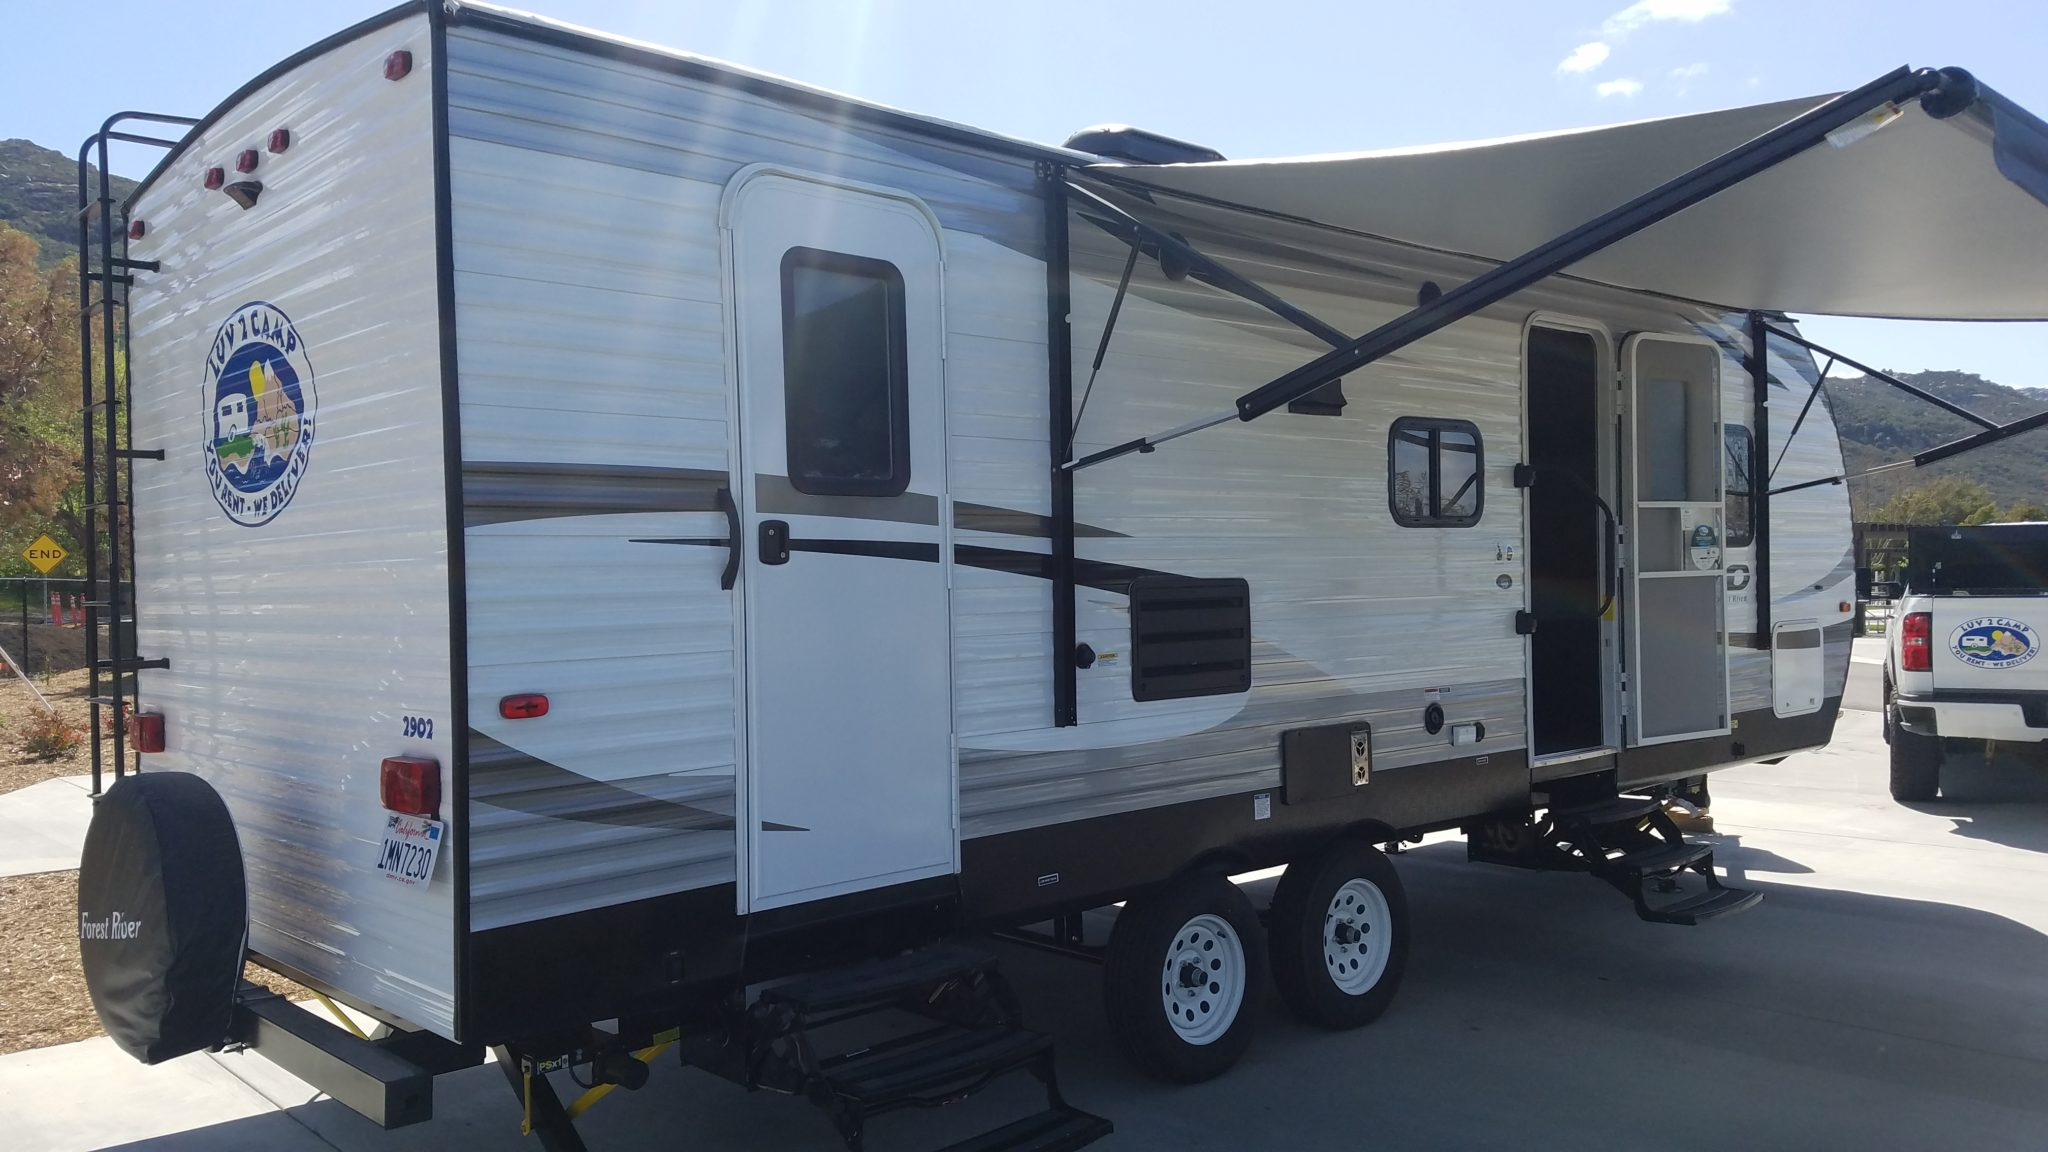 Luv2Camp Temecula RV Camping Trailer Rentals Delivered